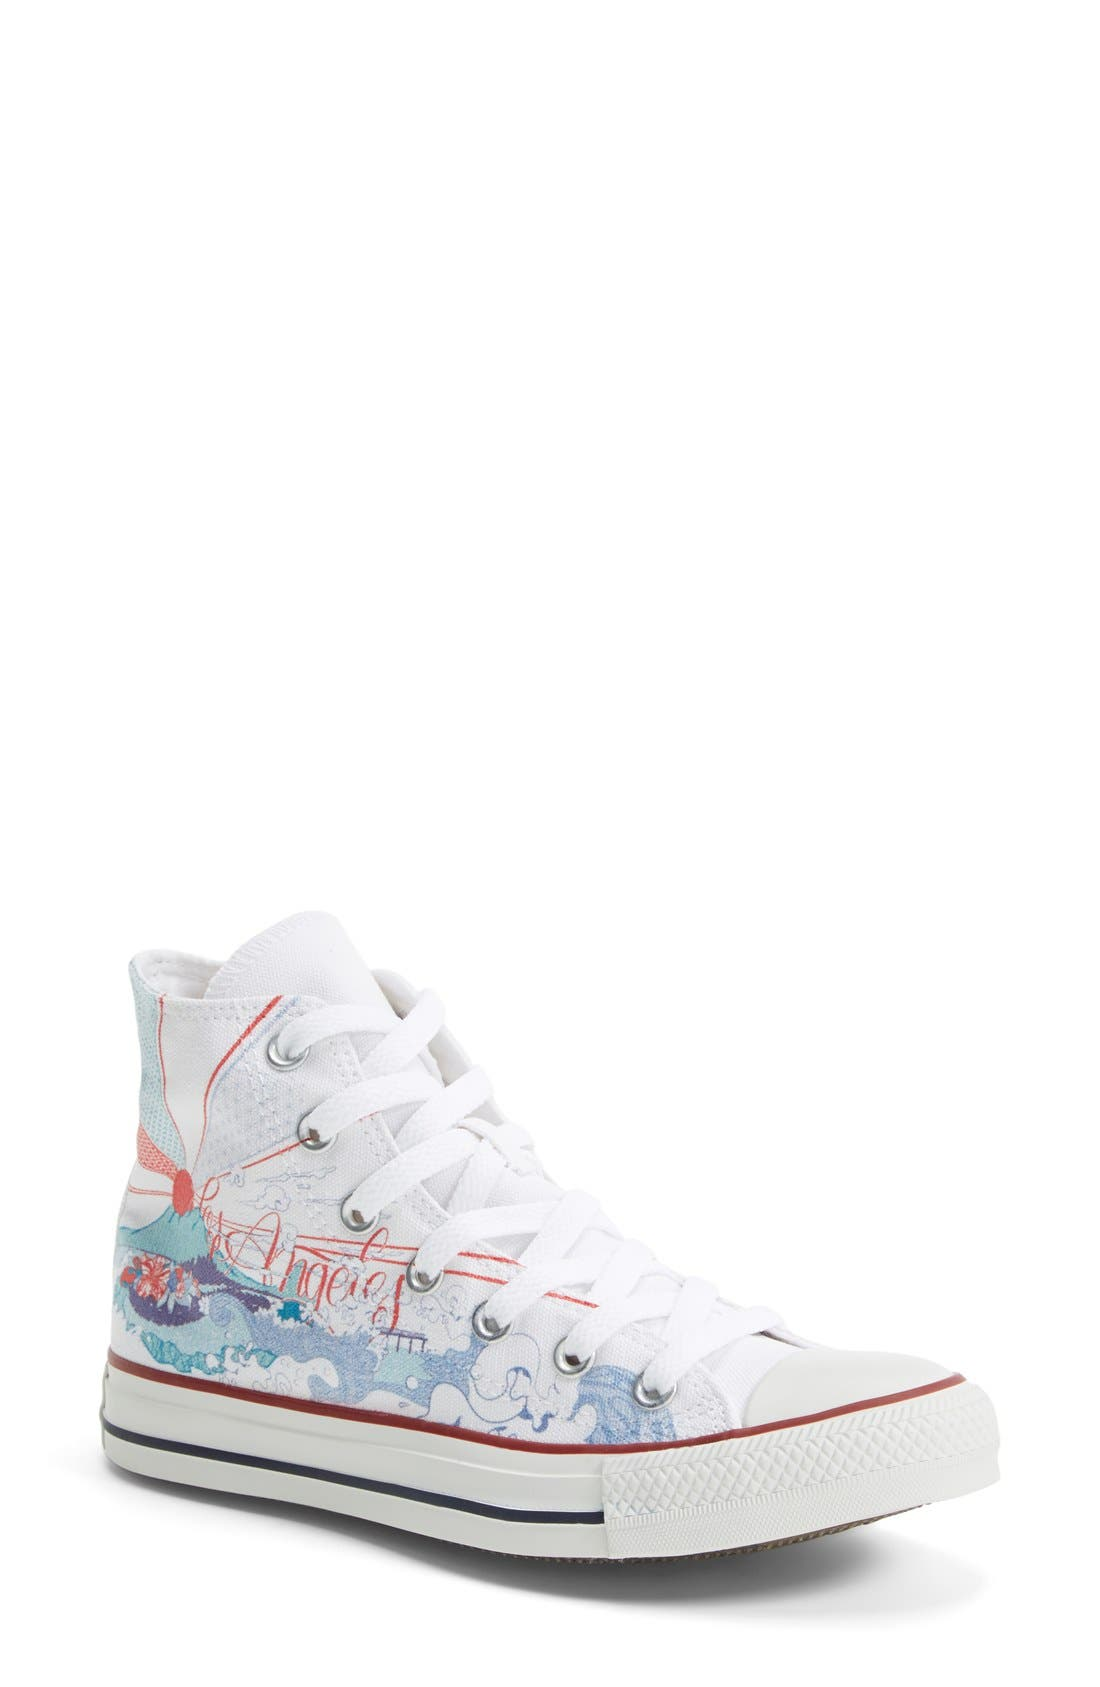 Alternate Image 1 Selected - Converse Chuck Taylor® All Star® 'Made By You - Los Angeles' High Top Sneaker (Women)